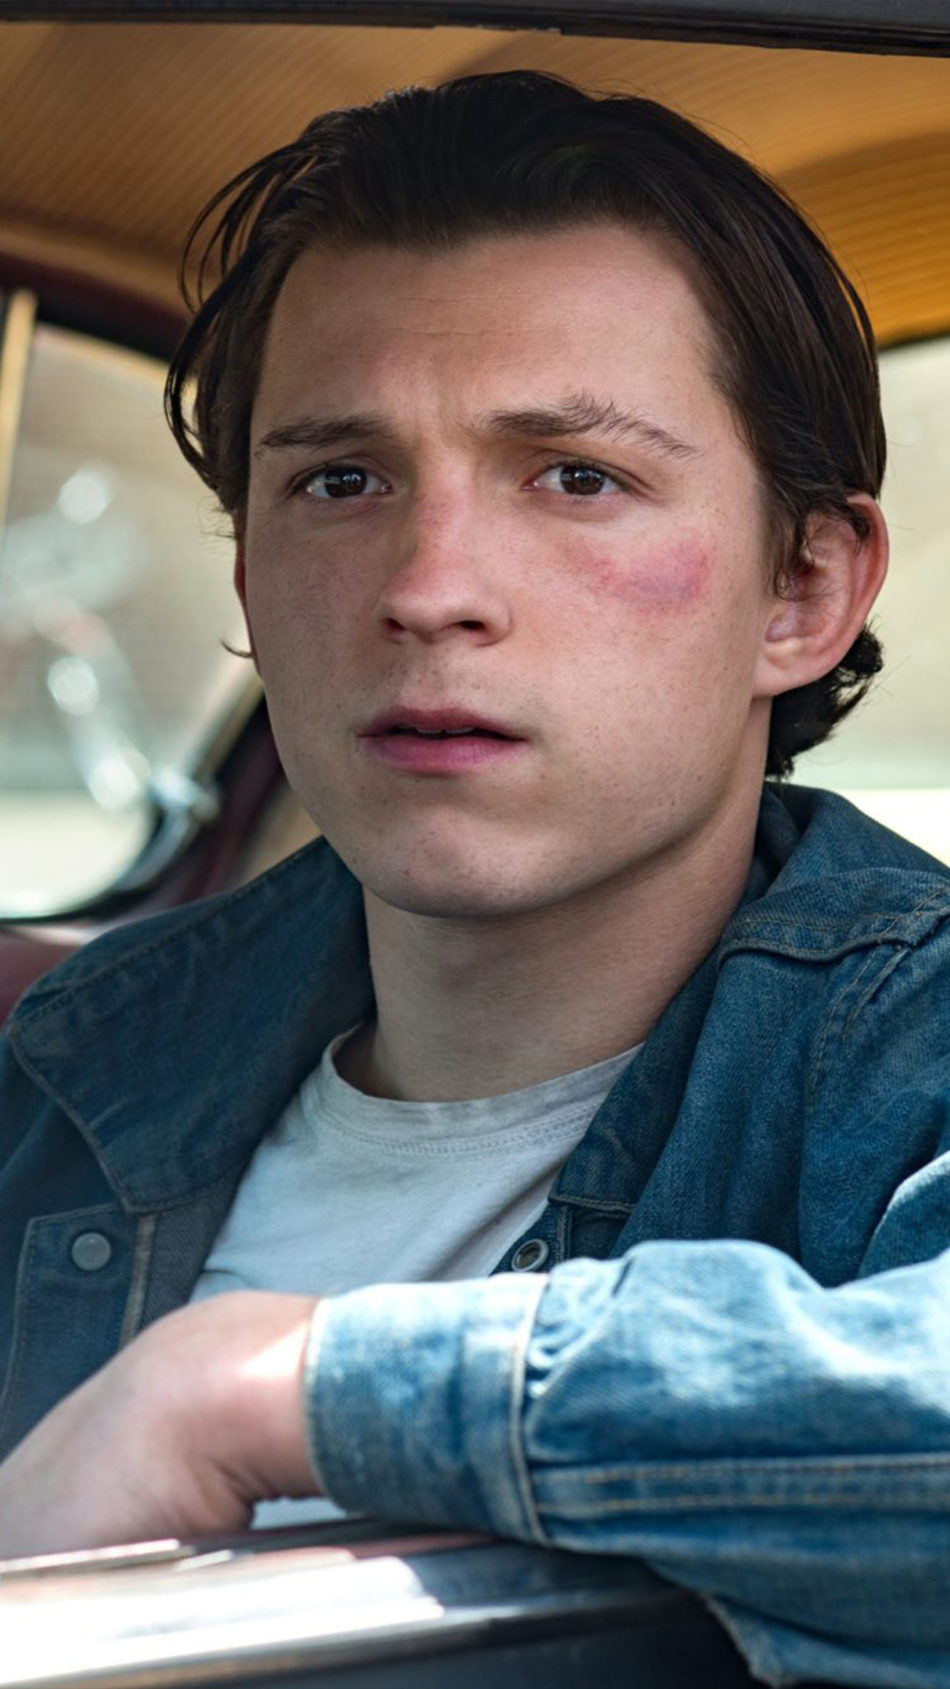 Tom Holland In The Devil All The Time 4K Ultra HD Mobile Wallpaper